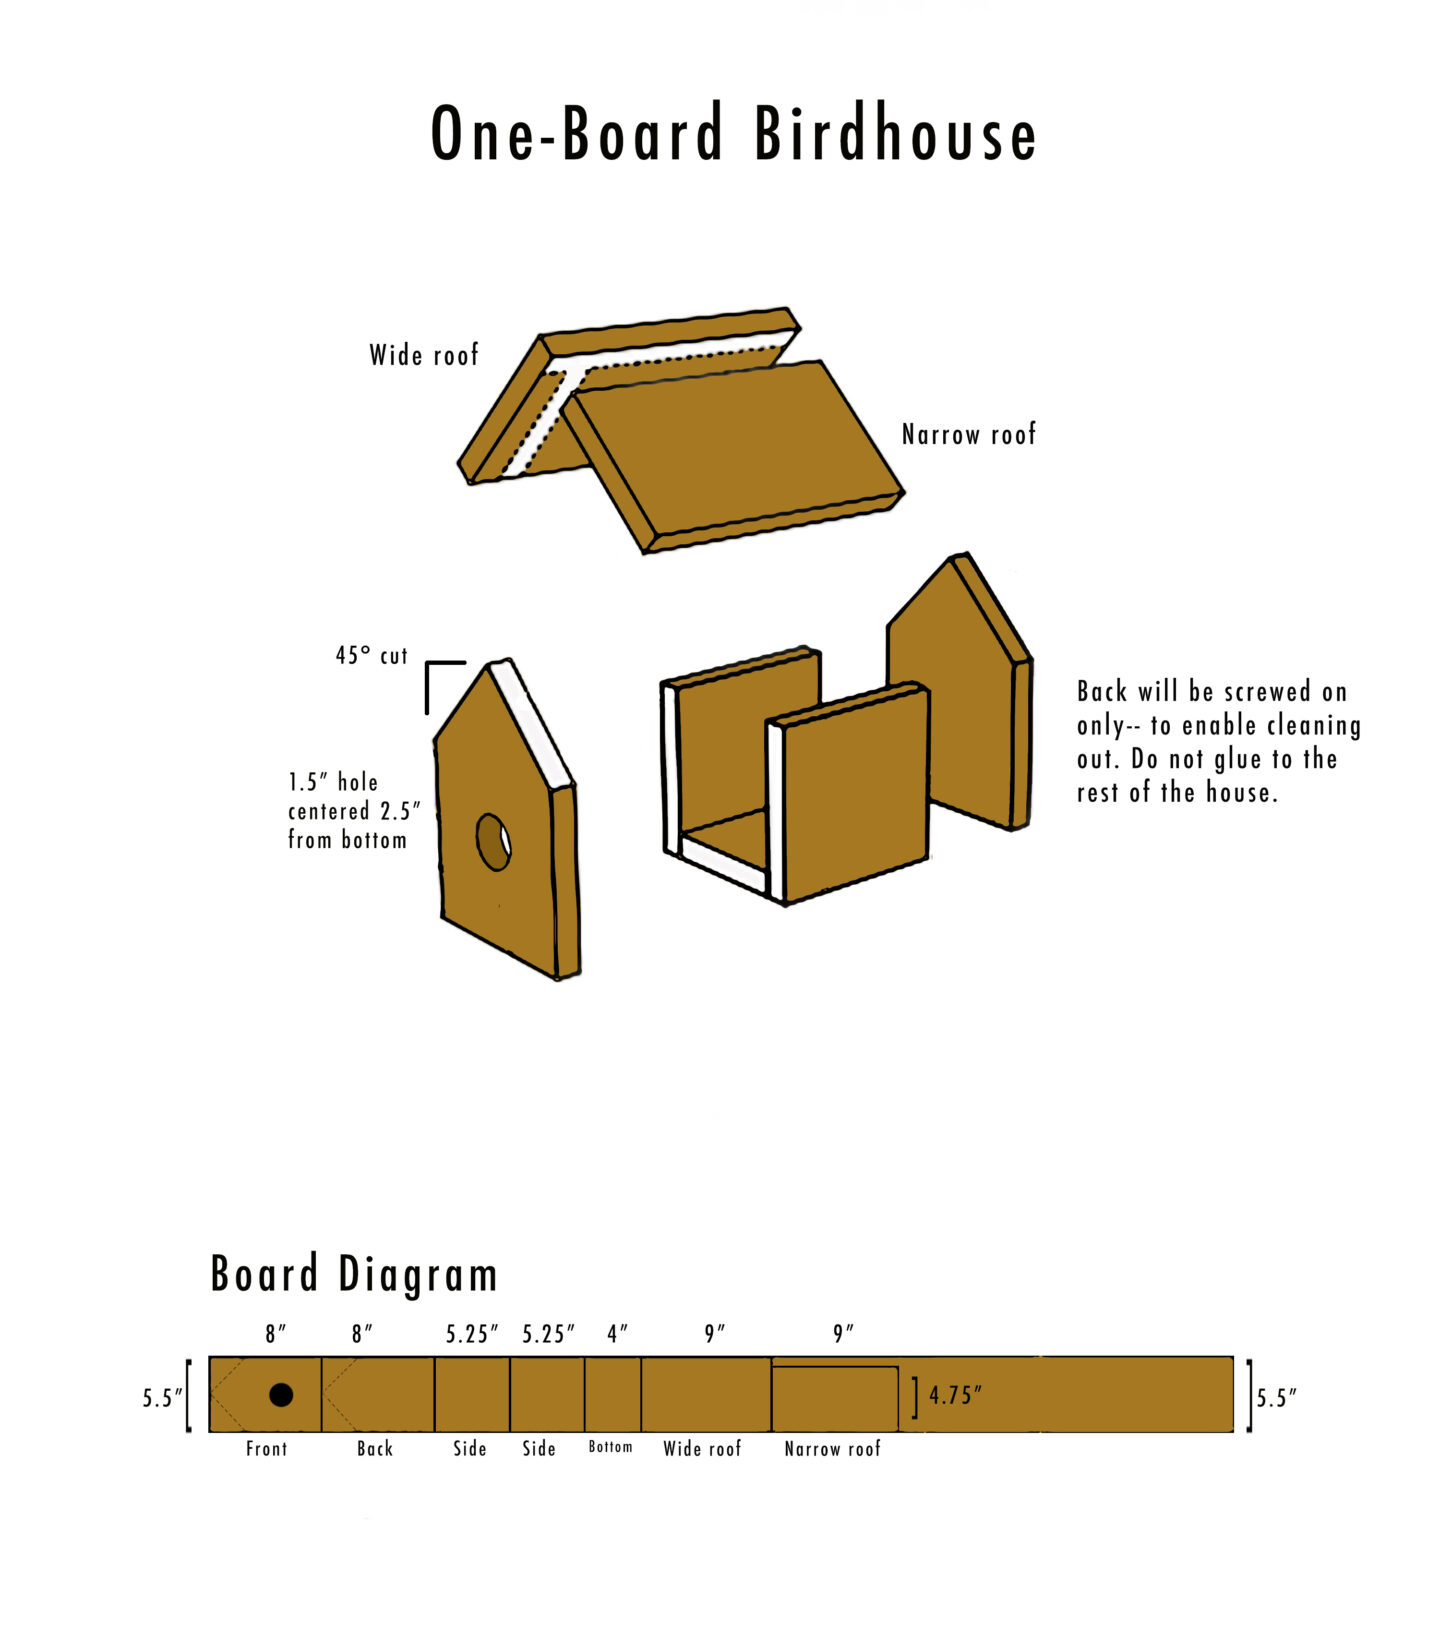 diy birdhouse diagram for cutting and assembling board